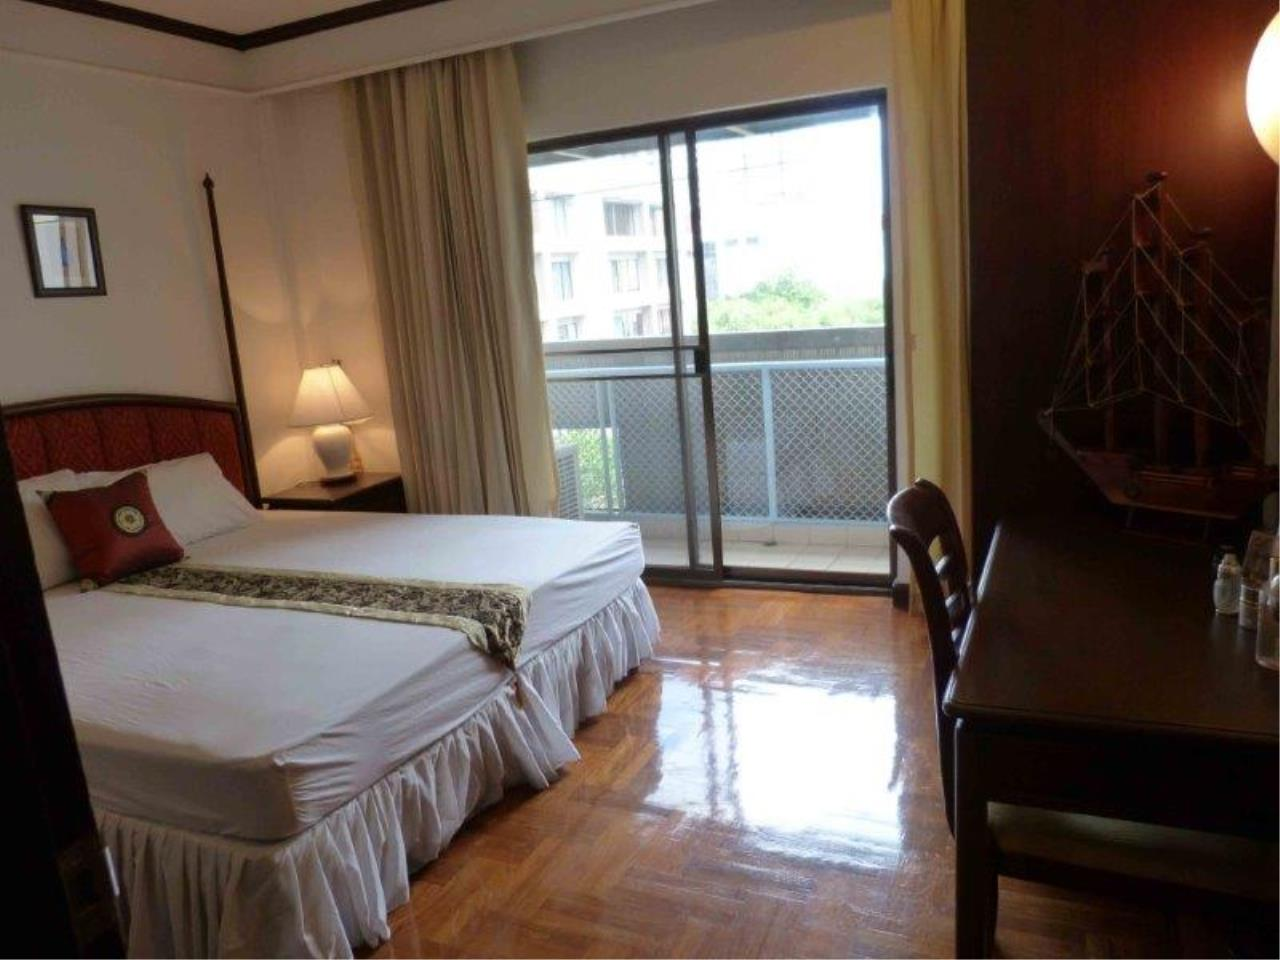 Century21 Skylux Agency's Piya Place Tonson / Apartment (Serviced) For Rent / 2 Bedroom / 88 SQM / BTS Chit Lom / Bangkok 8